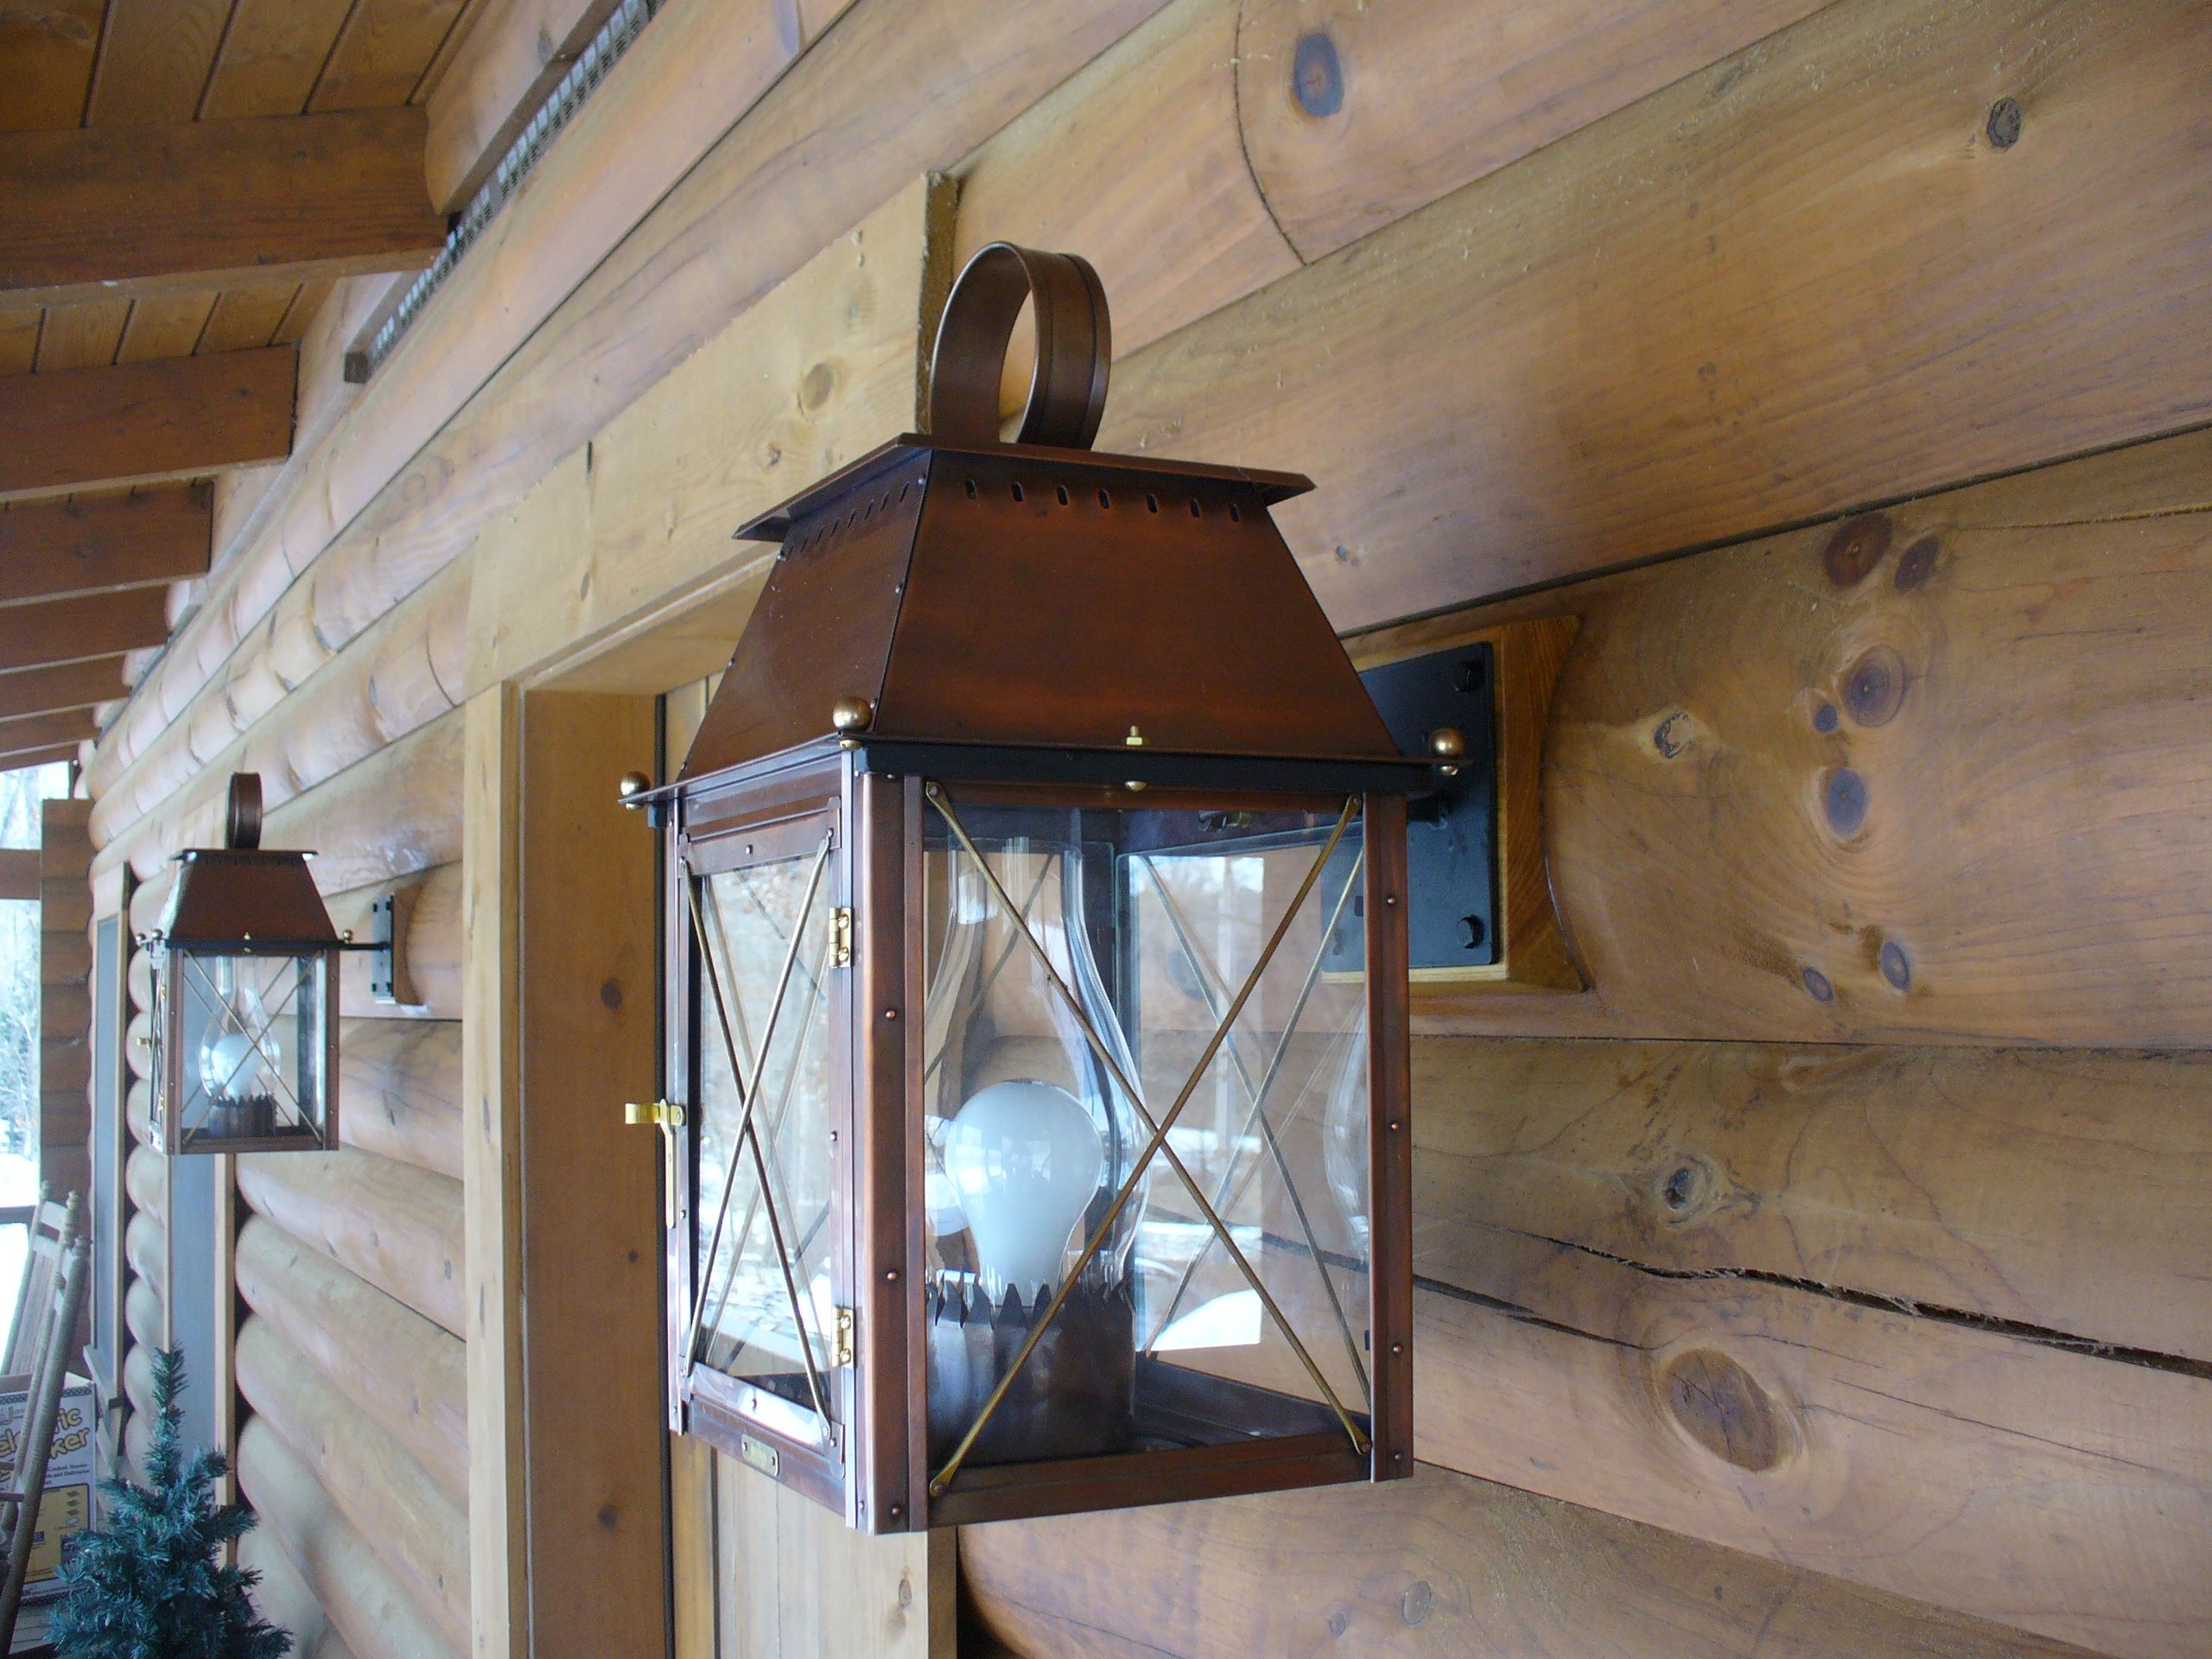 The Coach House Lantern Is Well Suited For A Rustic Log Cabin Like This One